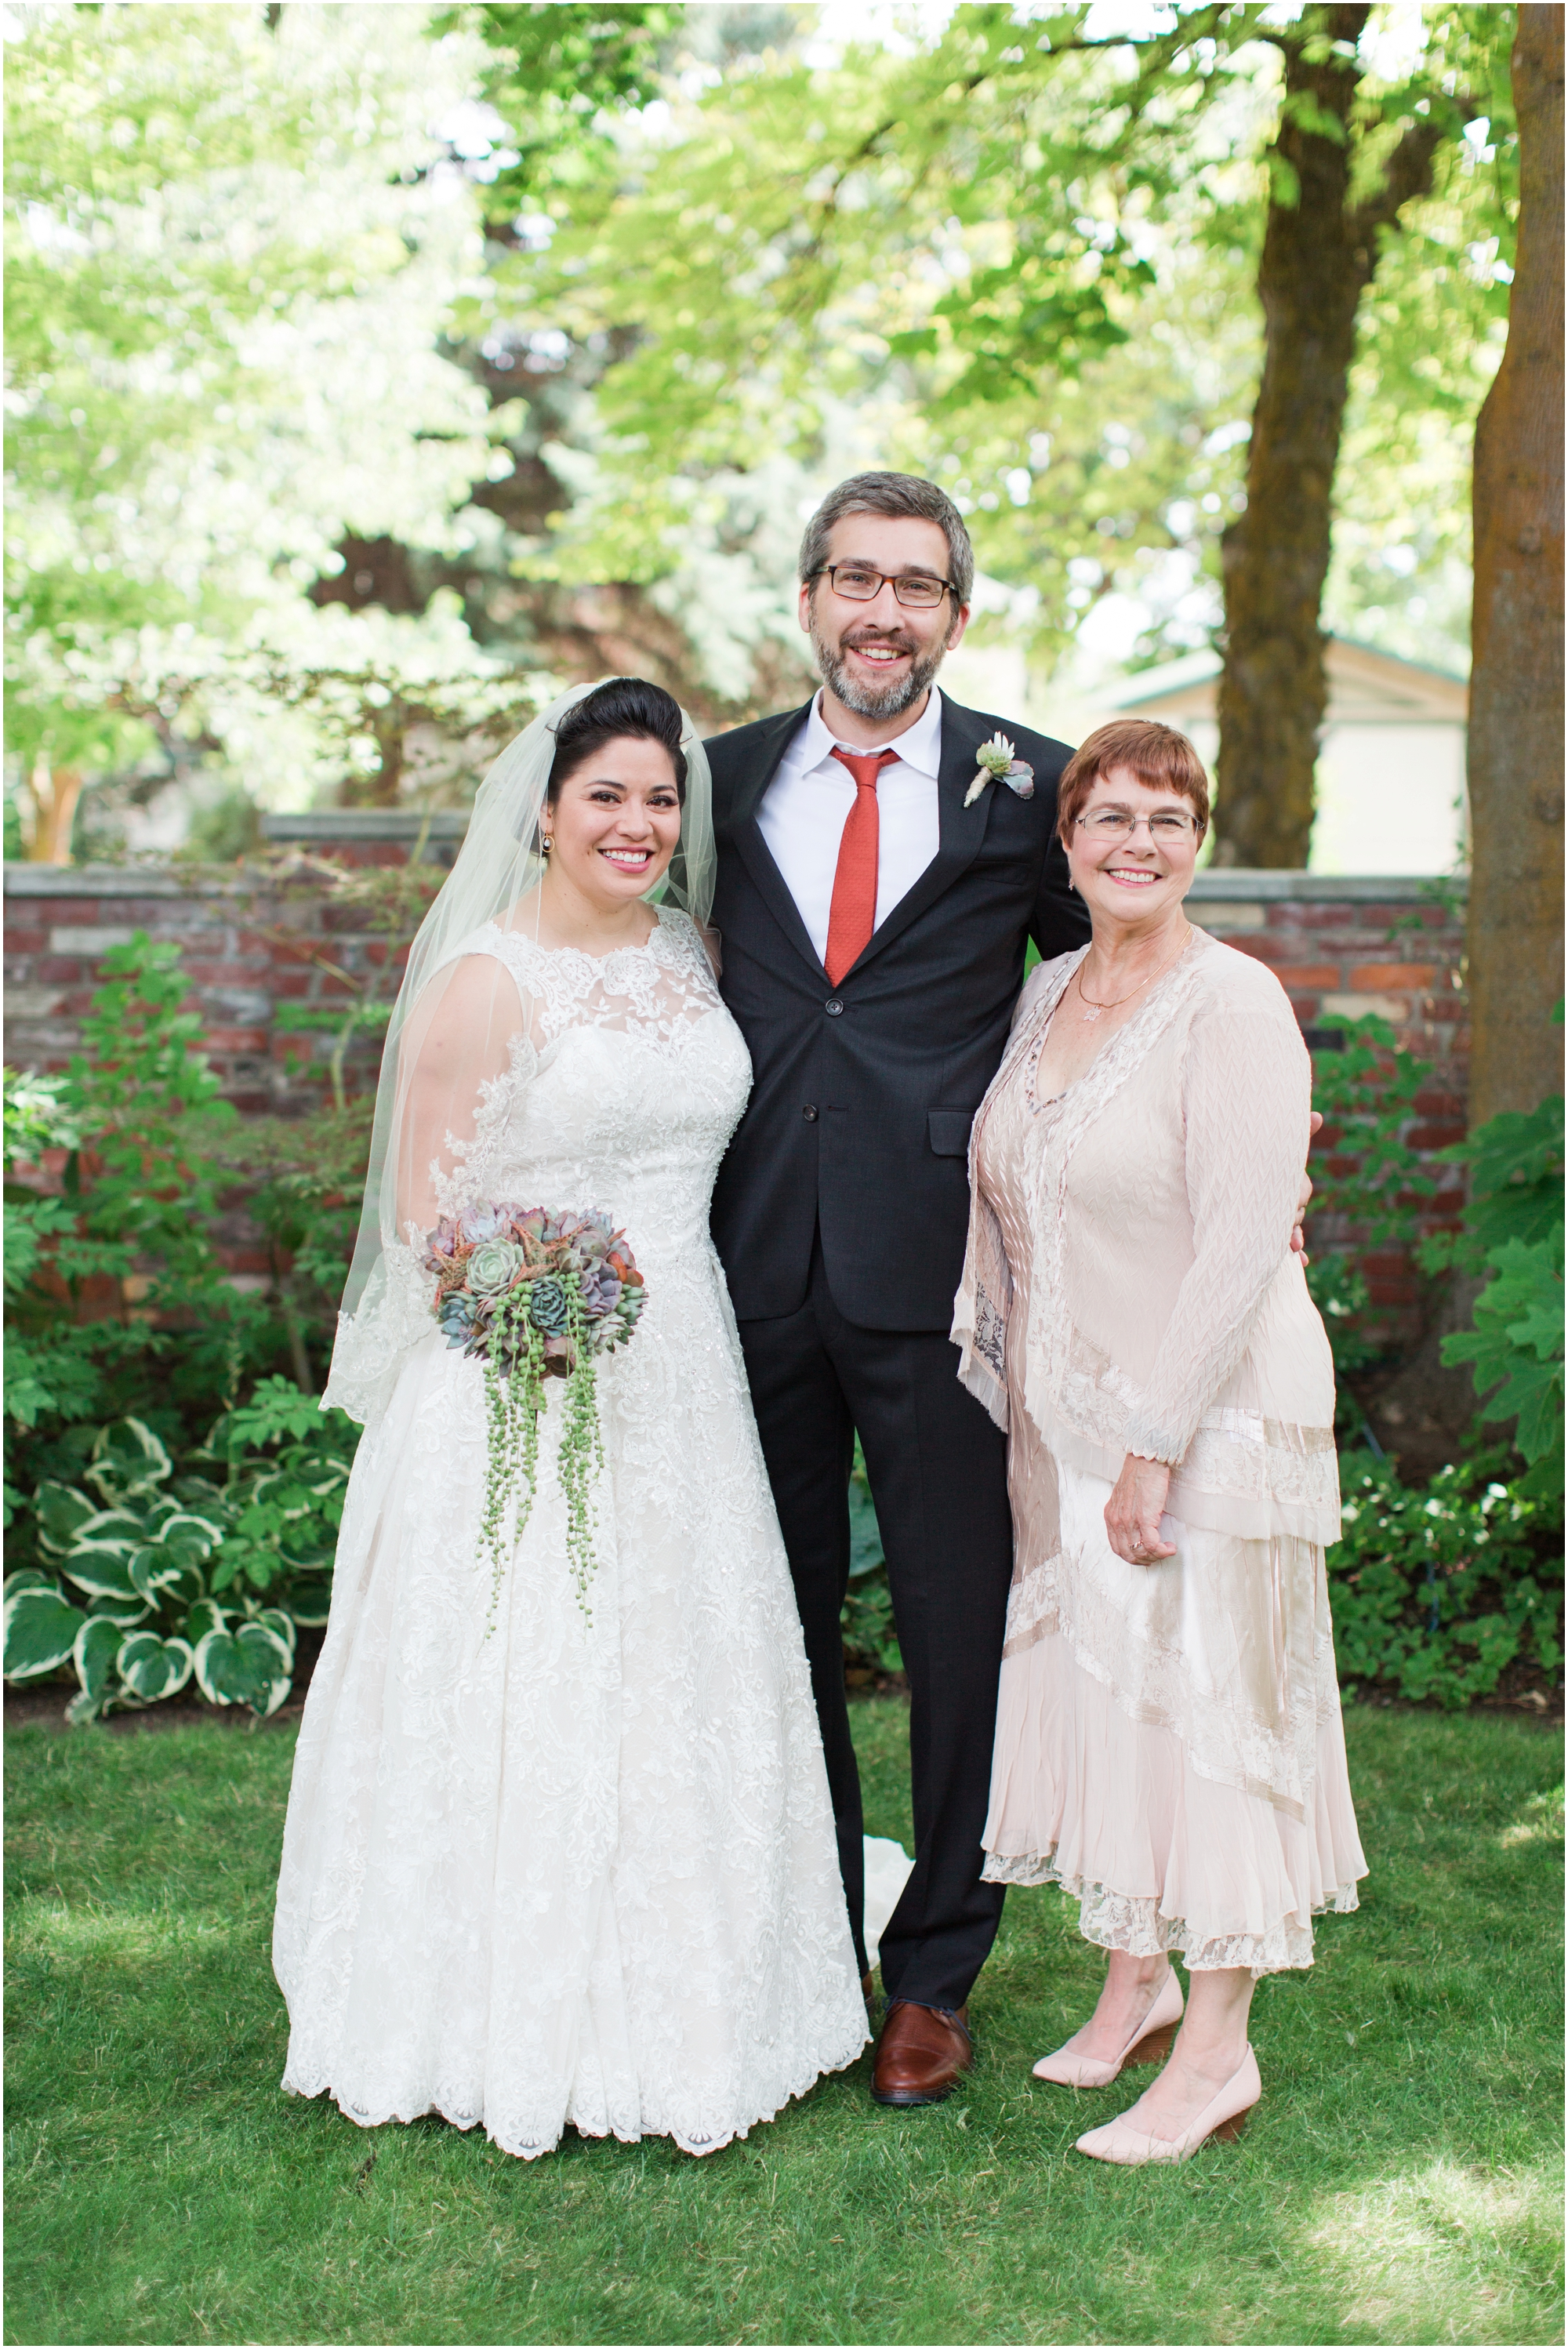 Garden wedding in Ellensburg, WA. Photos by Briana Calderon Photography based in the greater Seattle-Tacoma Area._1329.jpg